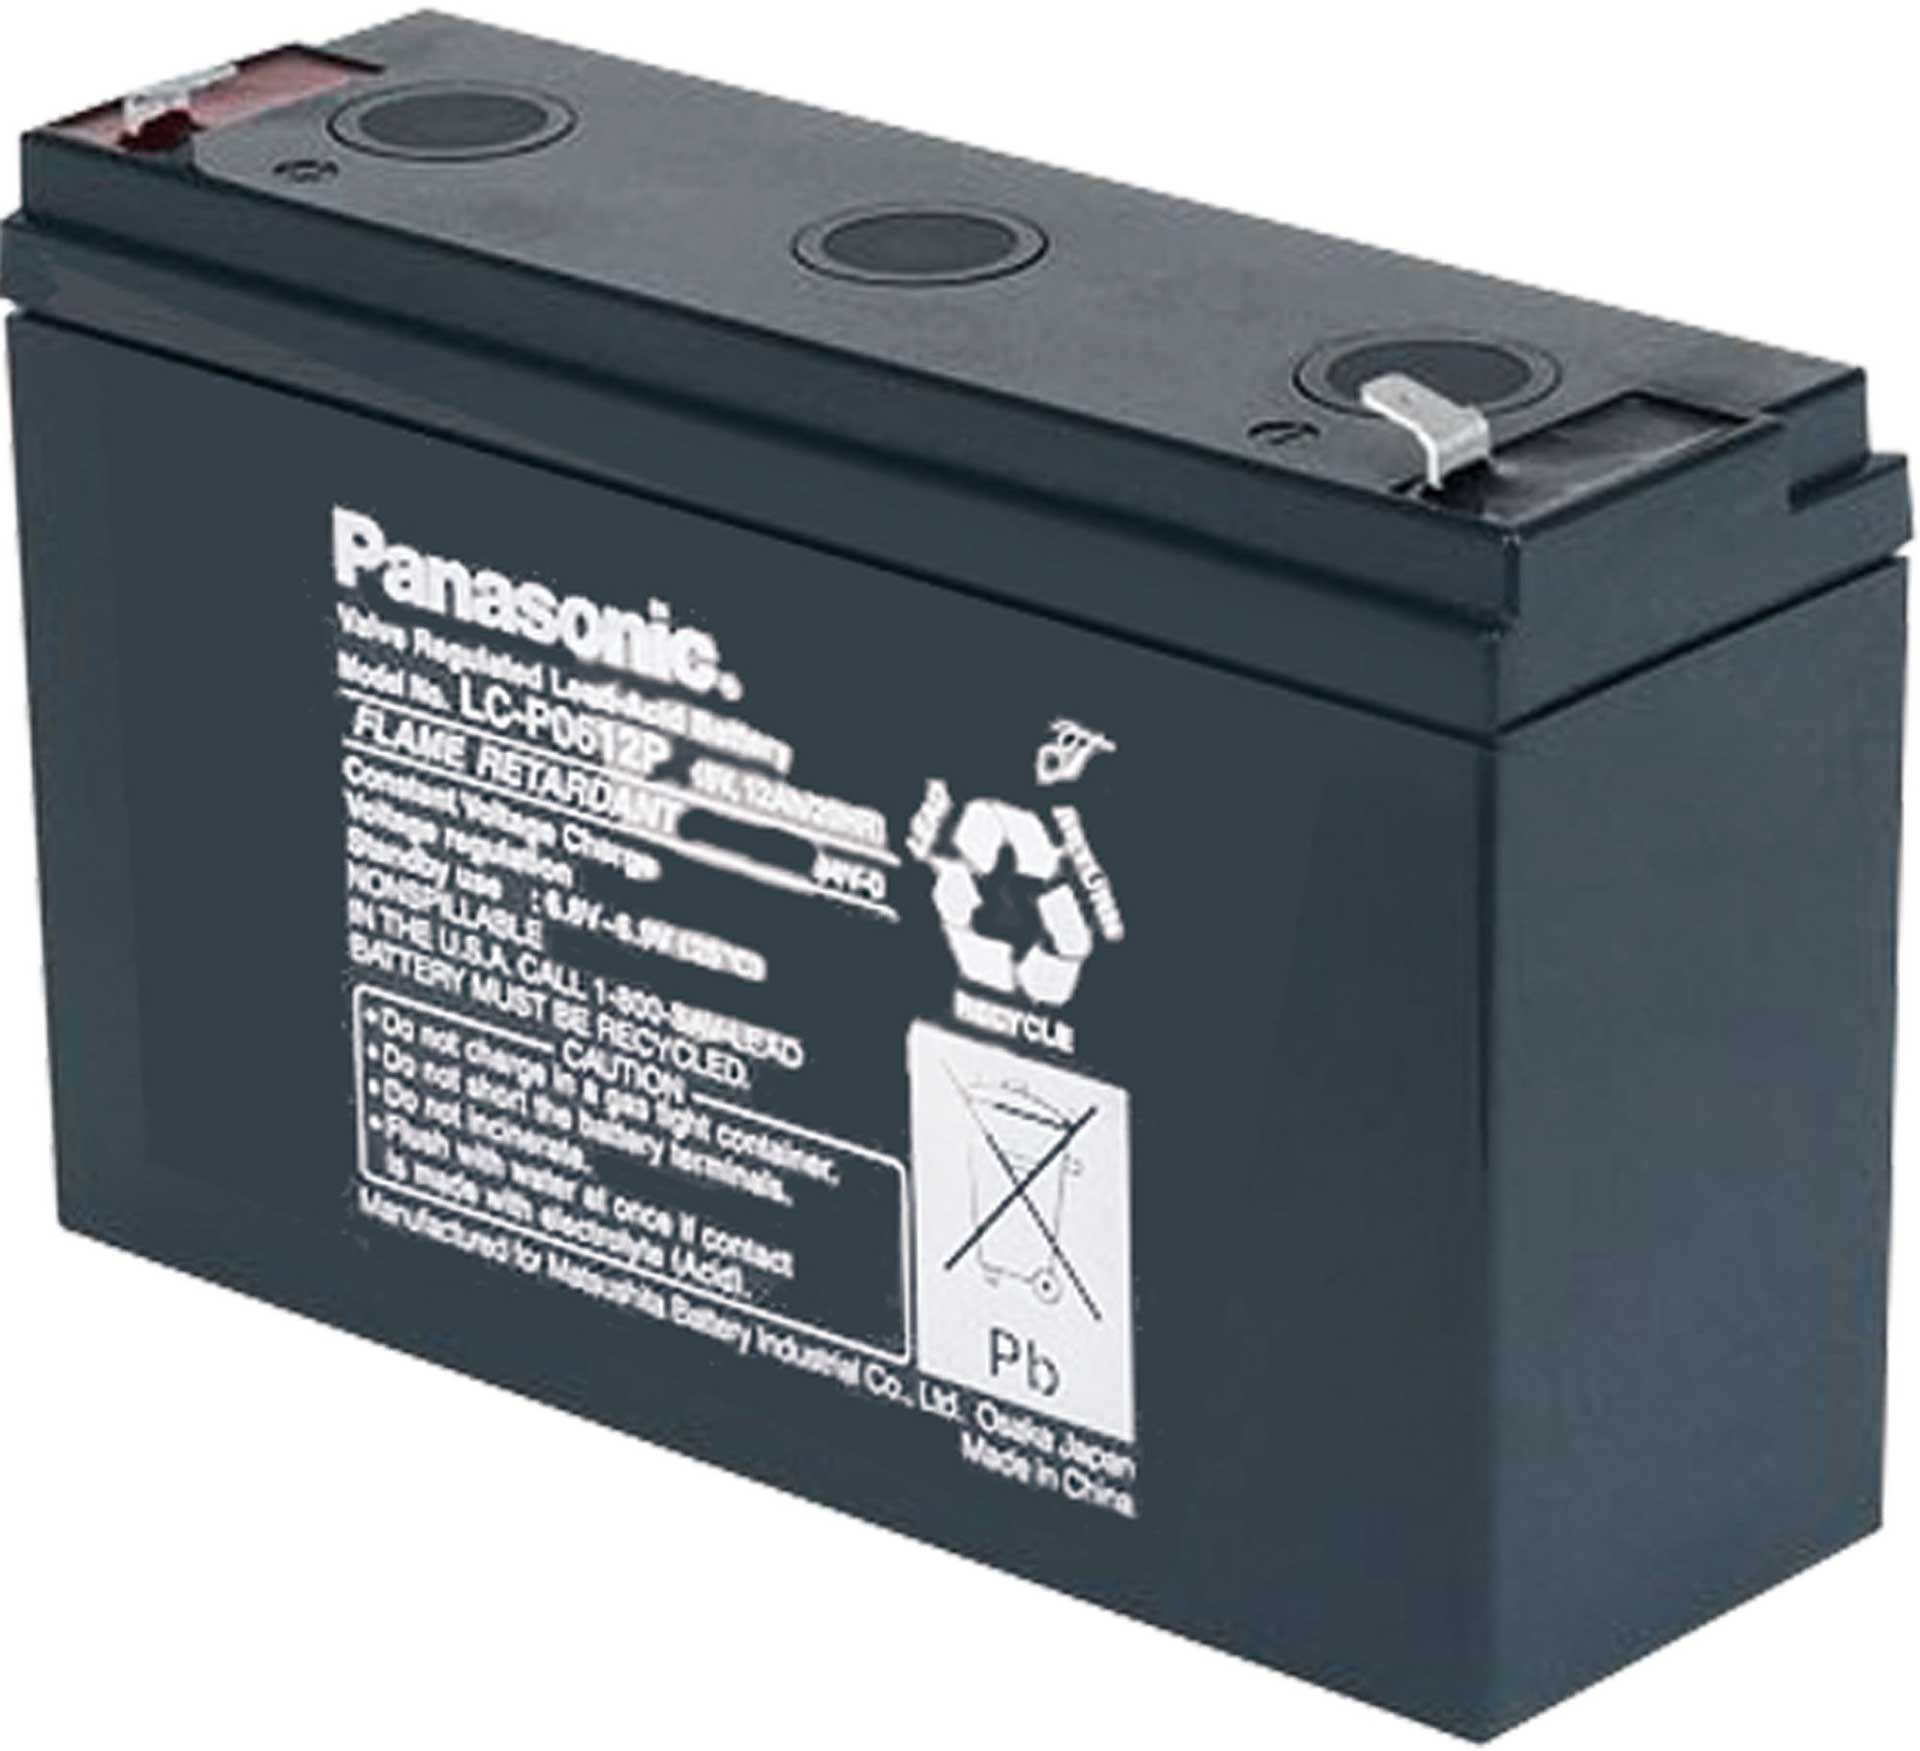 PANASONIC LEAD ACID BATTERY 6V/12AH